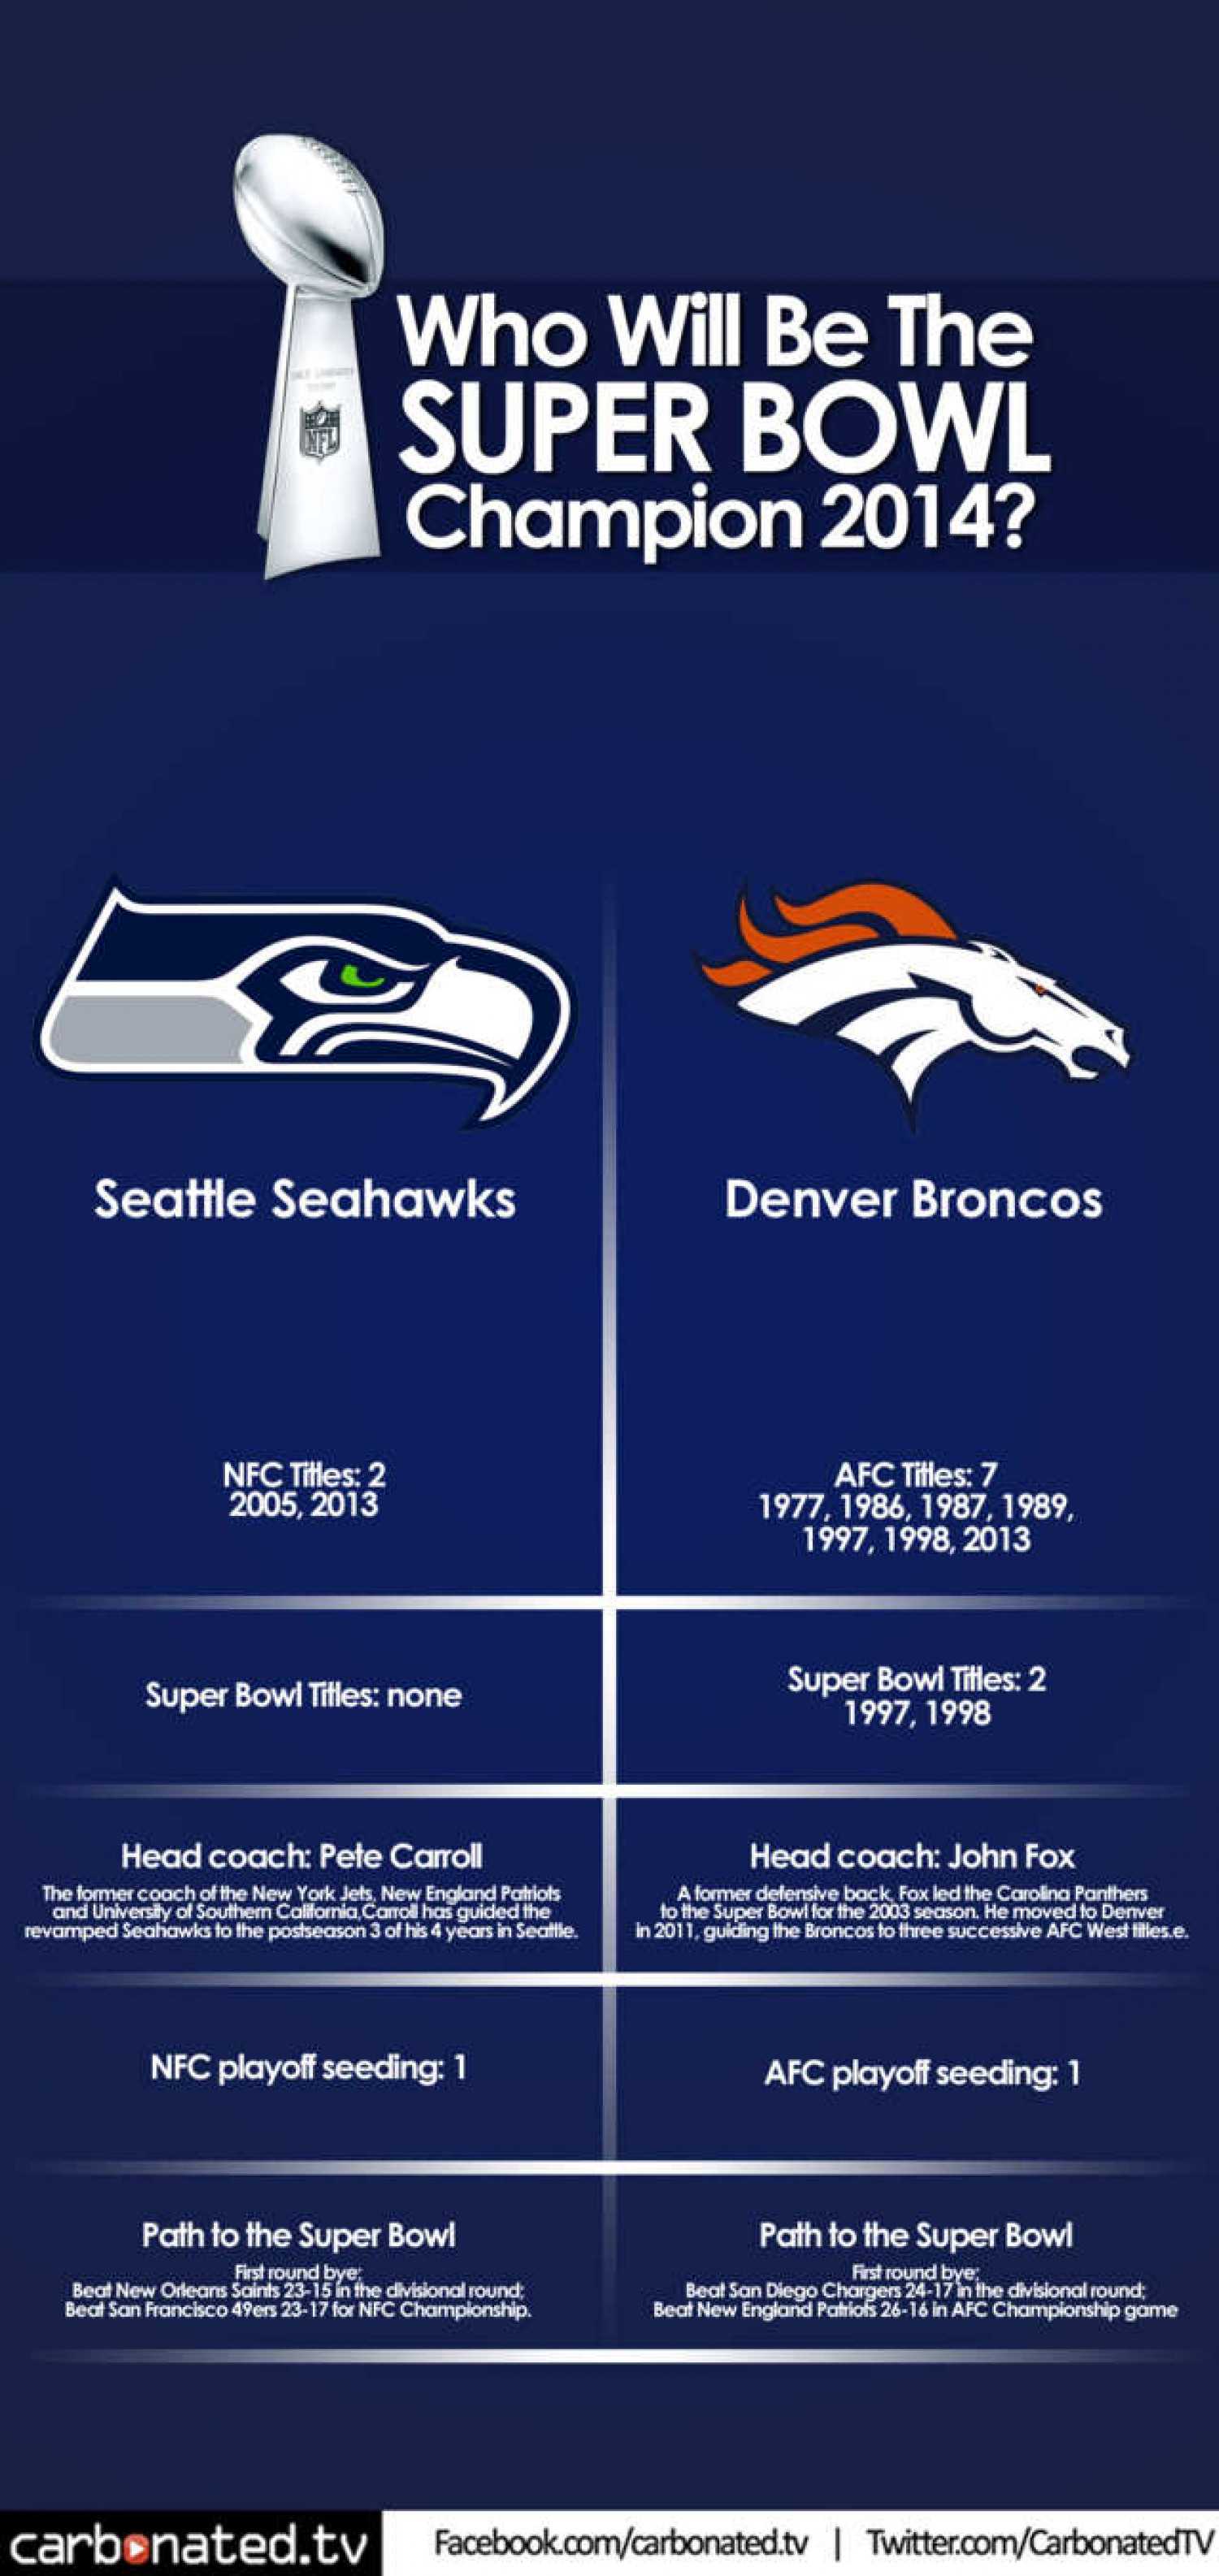 Who Will Be The Super Bowl Champion